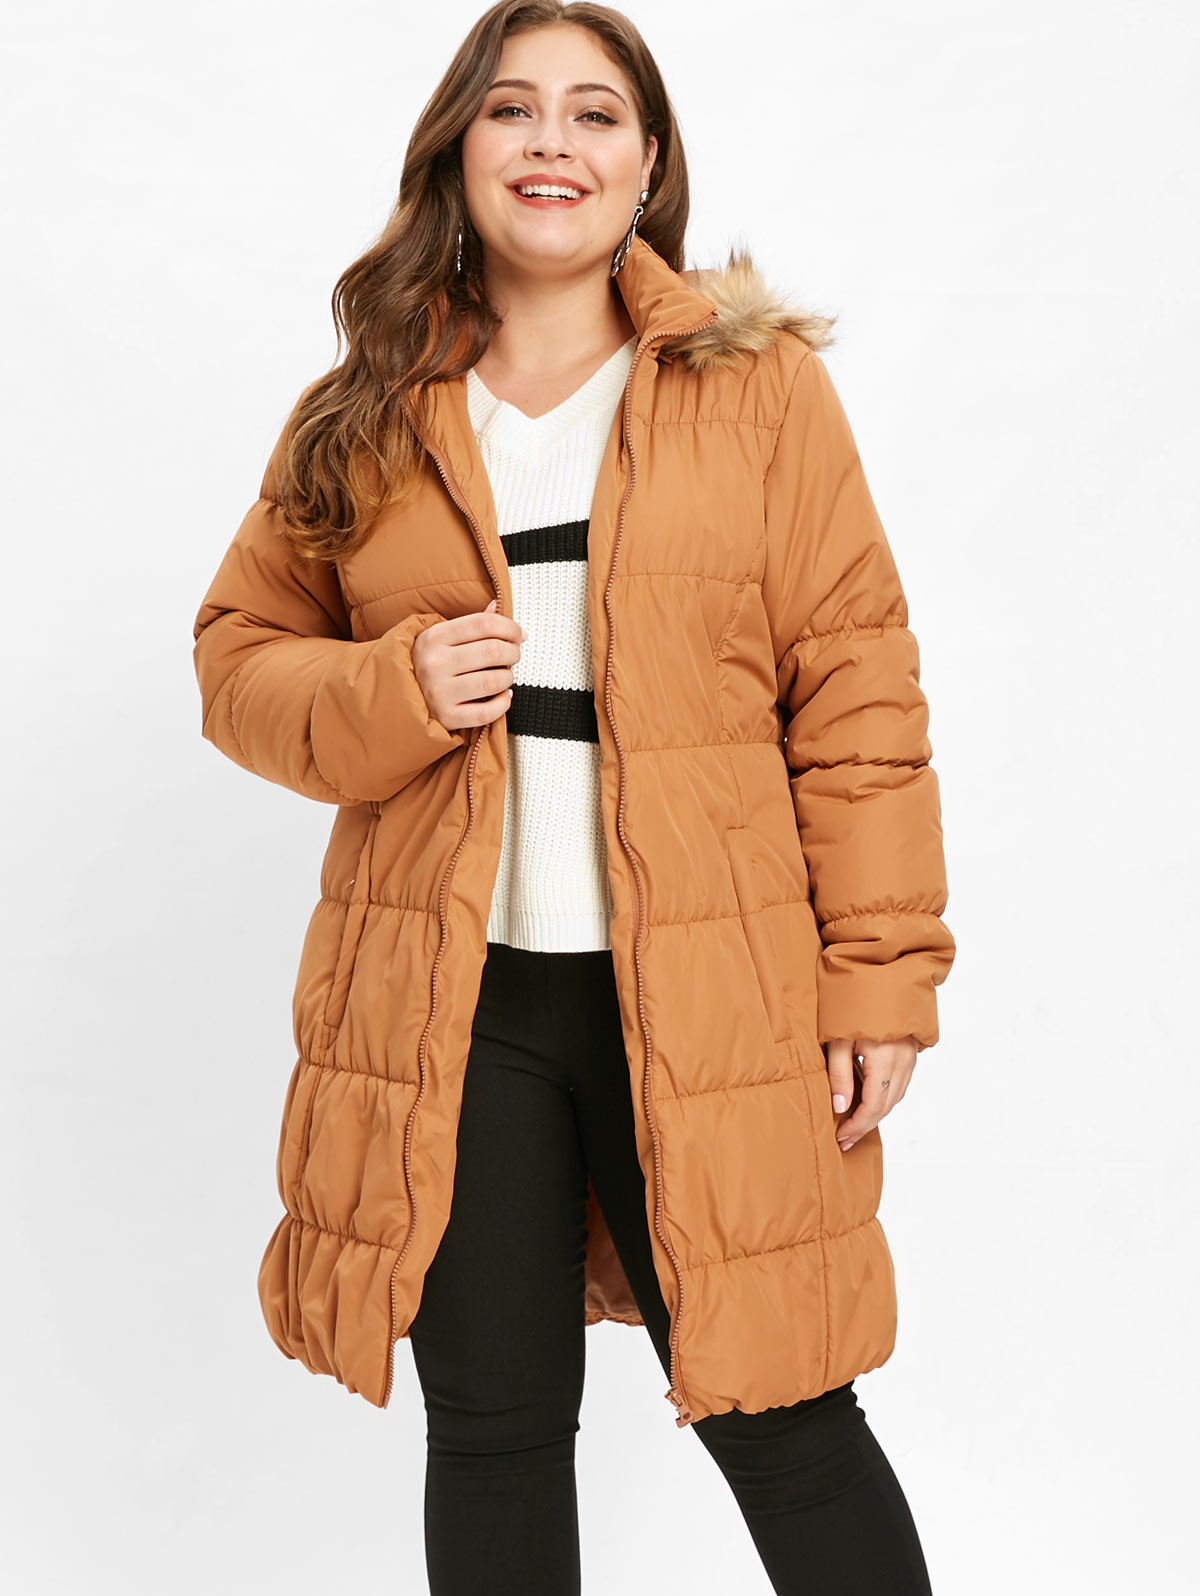 2d8052b0080 Wipalo Women Plus Size Faux Fur Trim Hooded Puffer Coat Loose Fitted Pocket  Casual Solid Long Parka Coat Ladies Winter Warm Coat